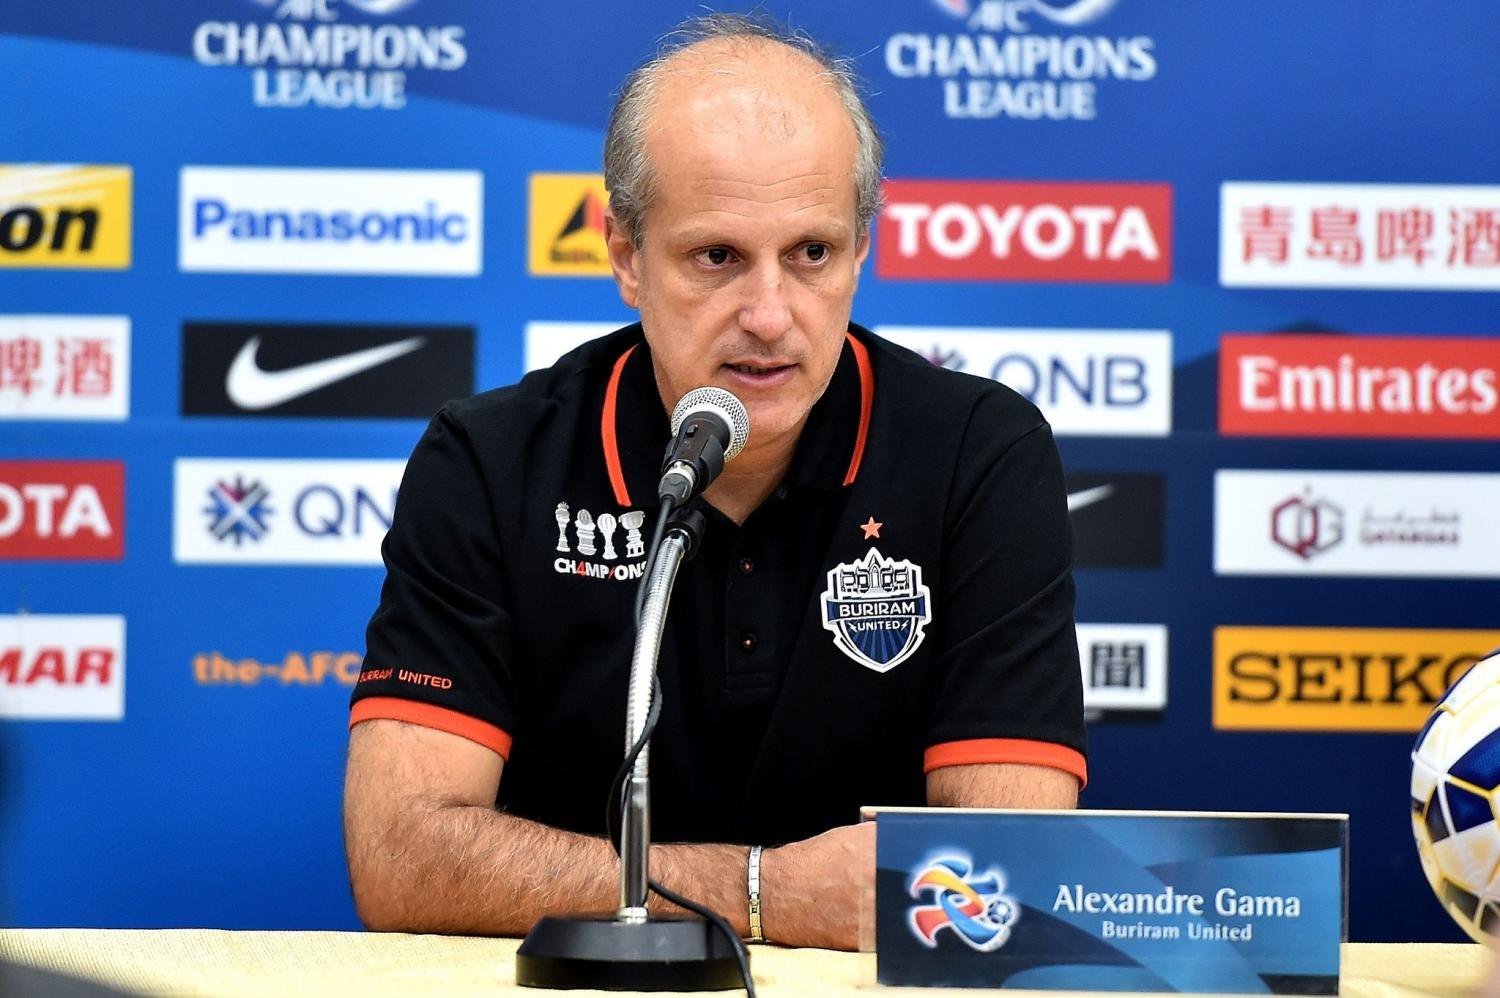 Gama confirmed as new Buriram coach